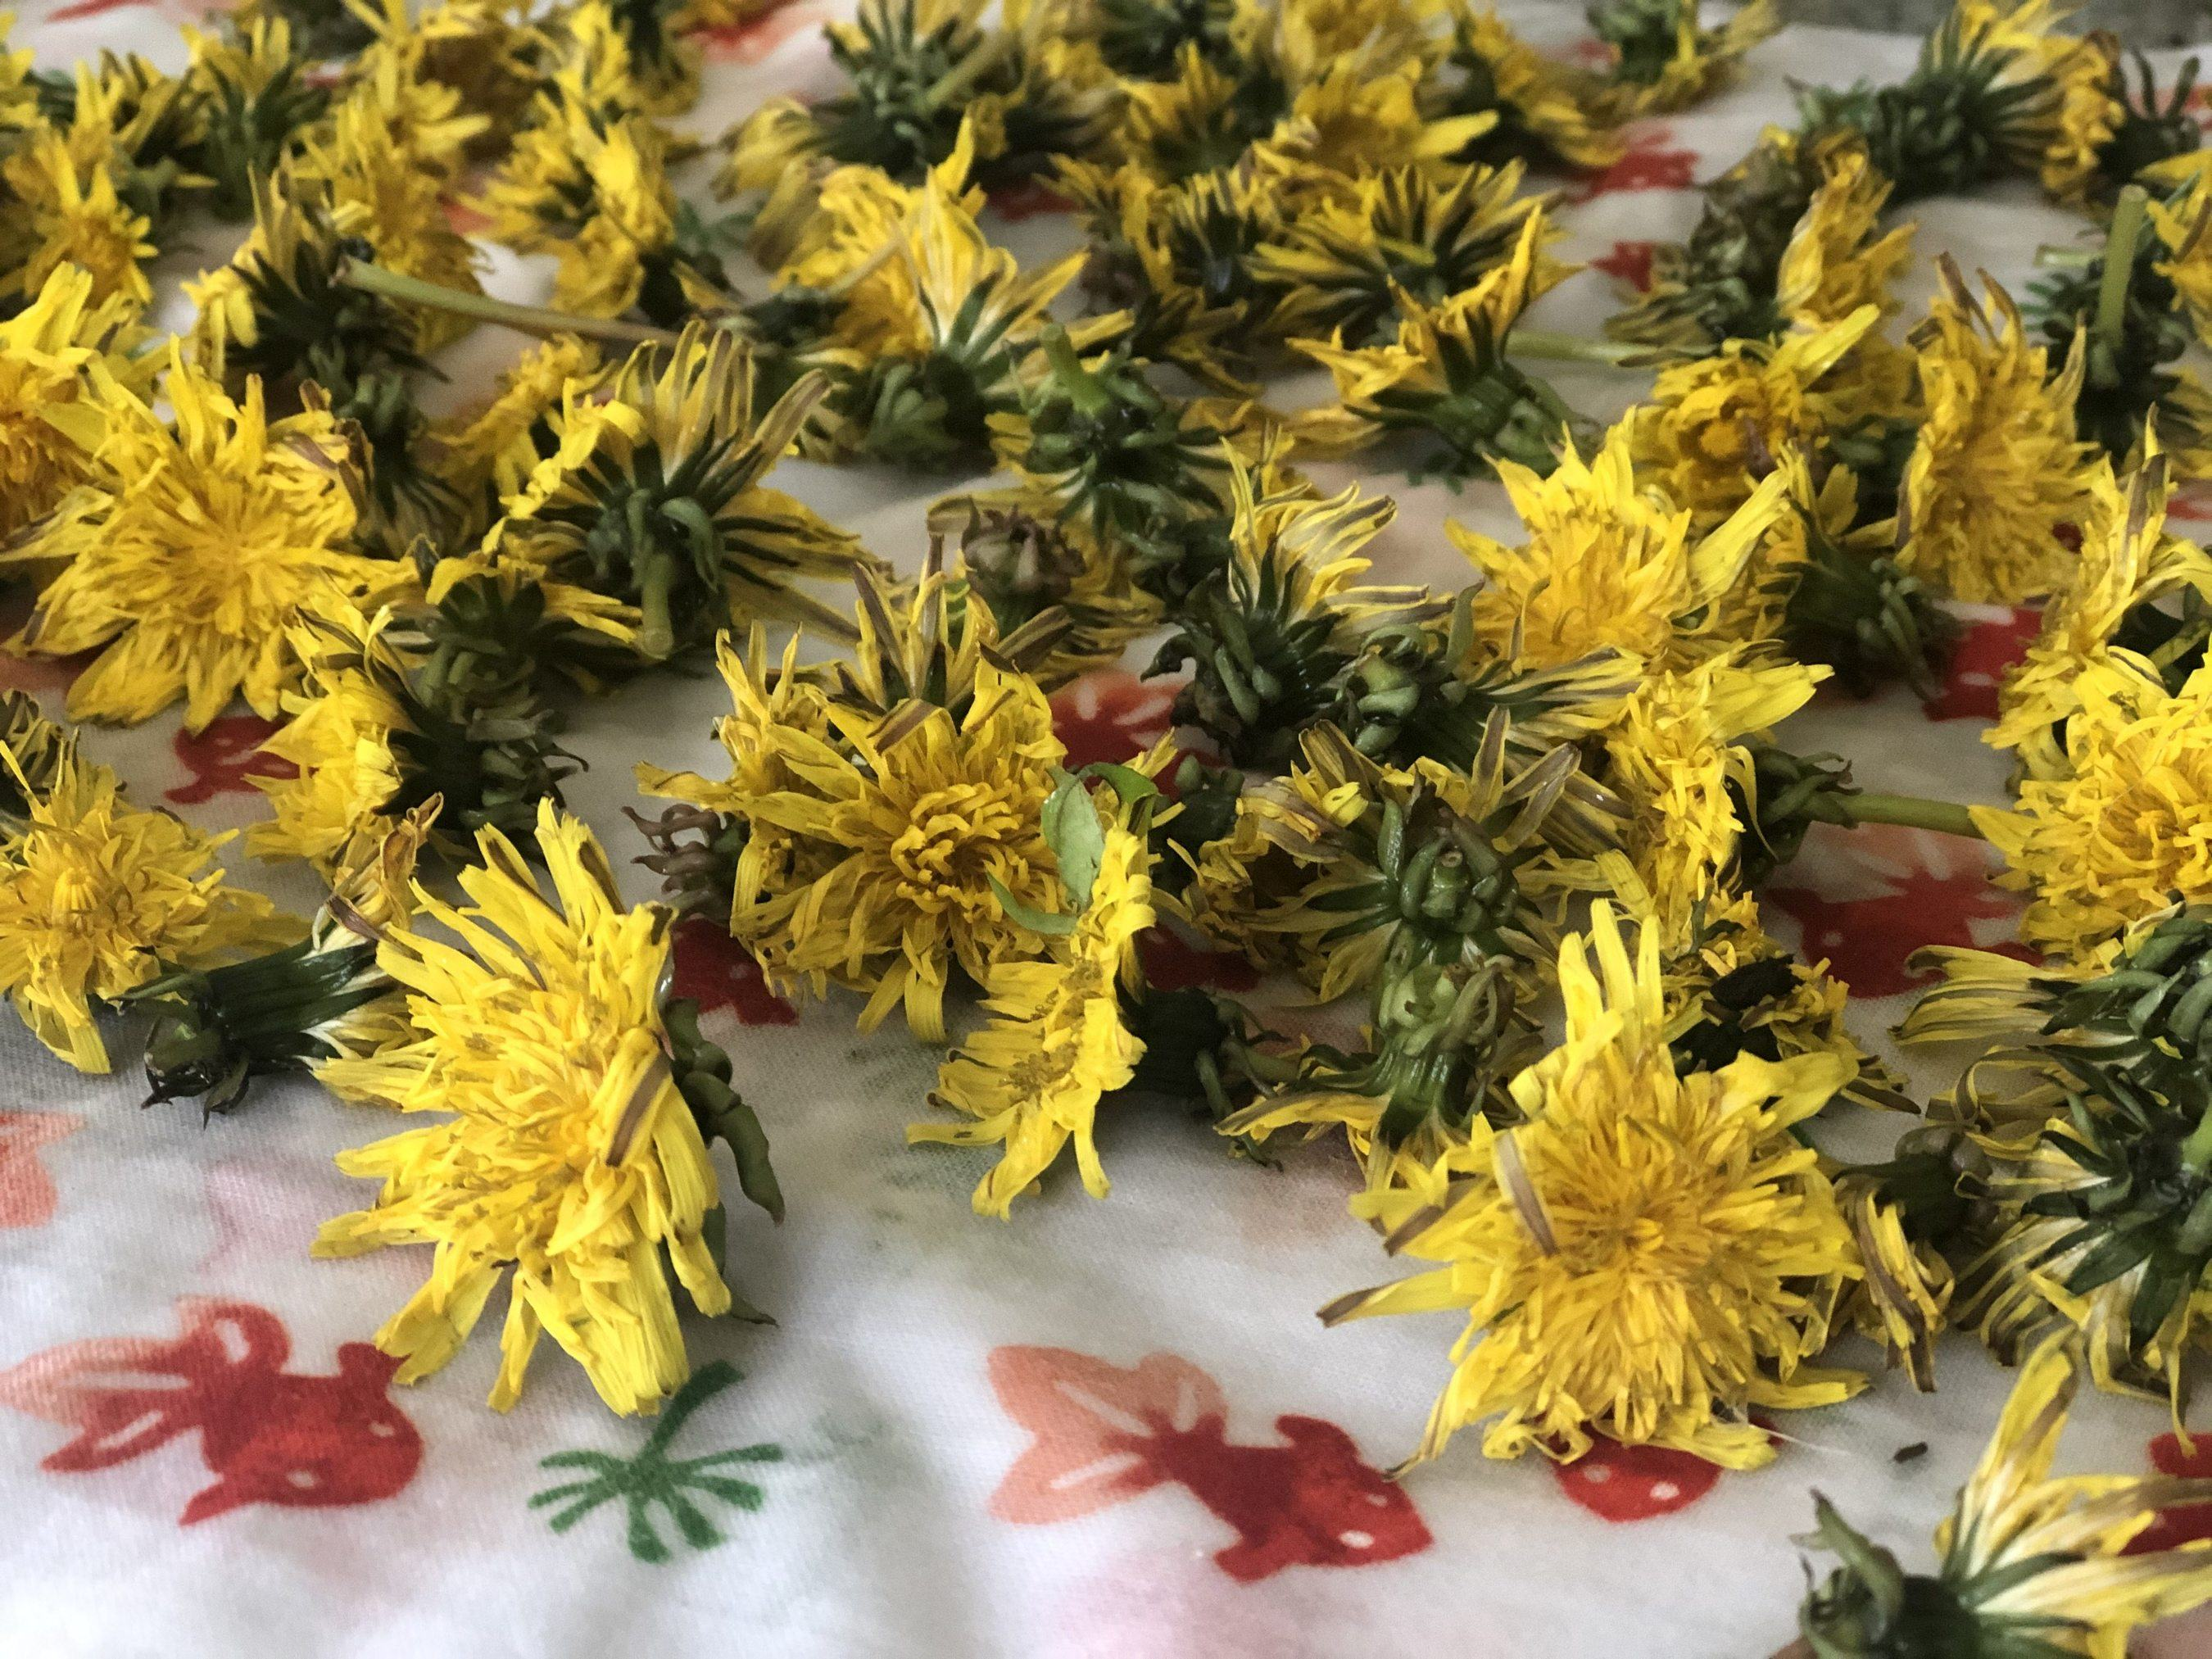 picked dandelions on a table